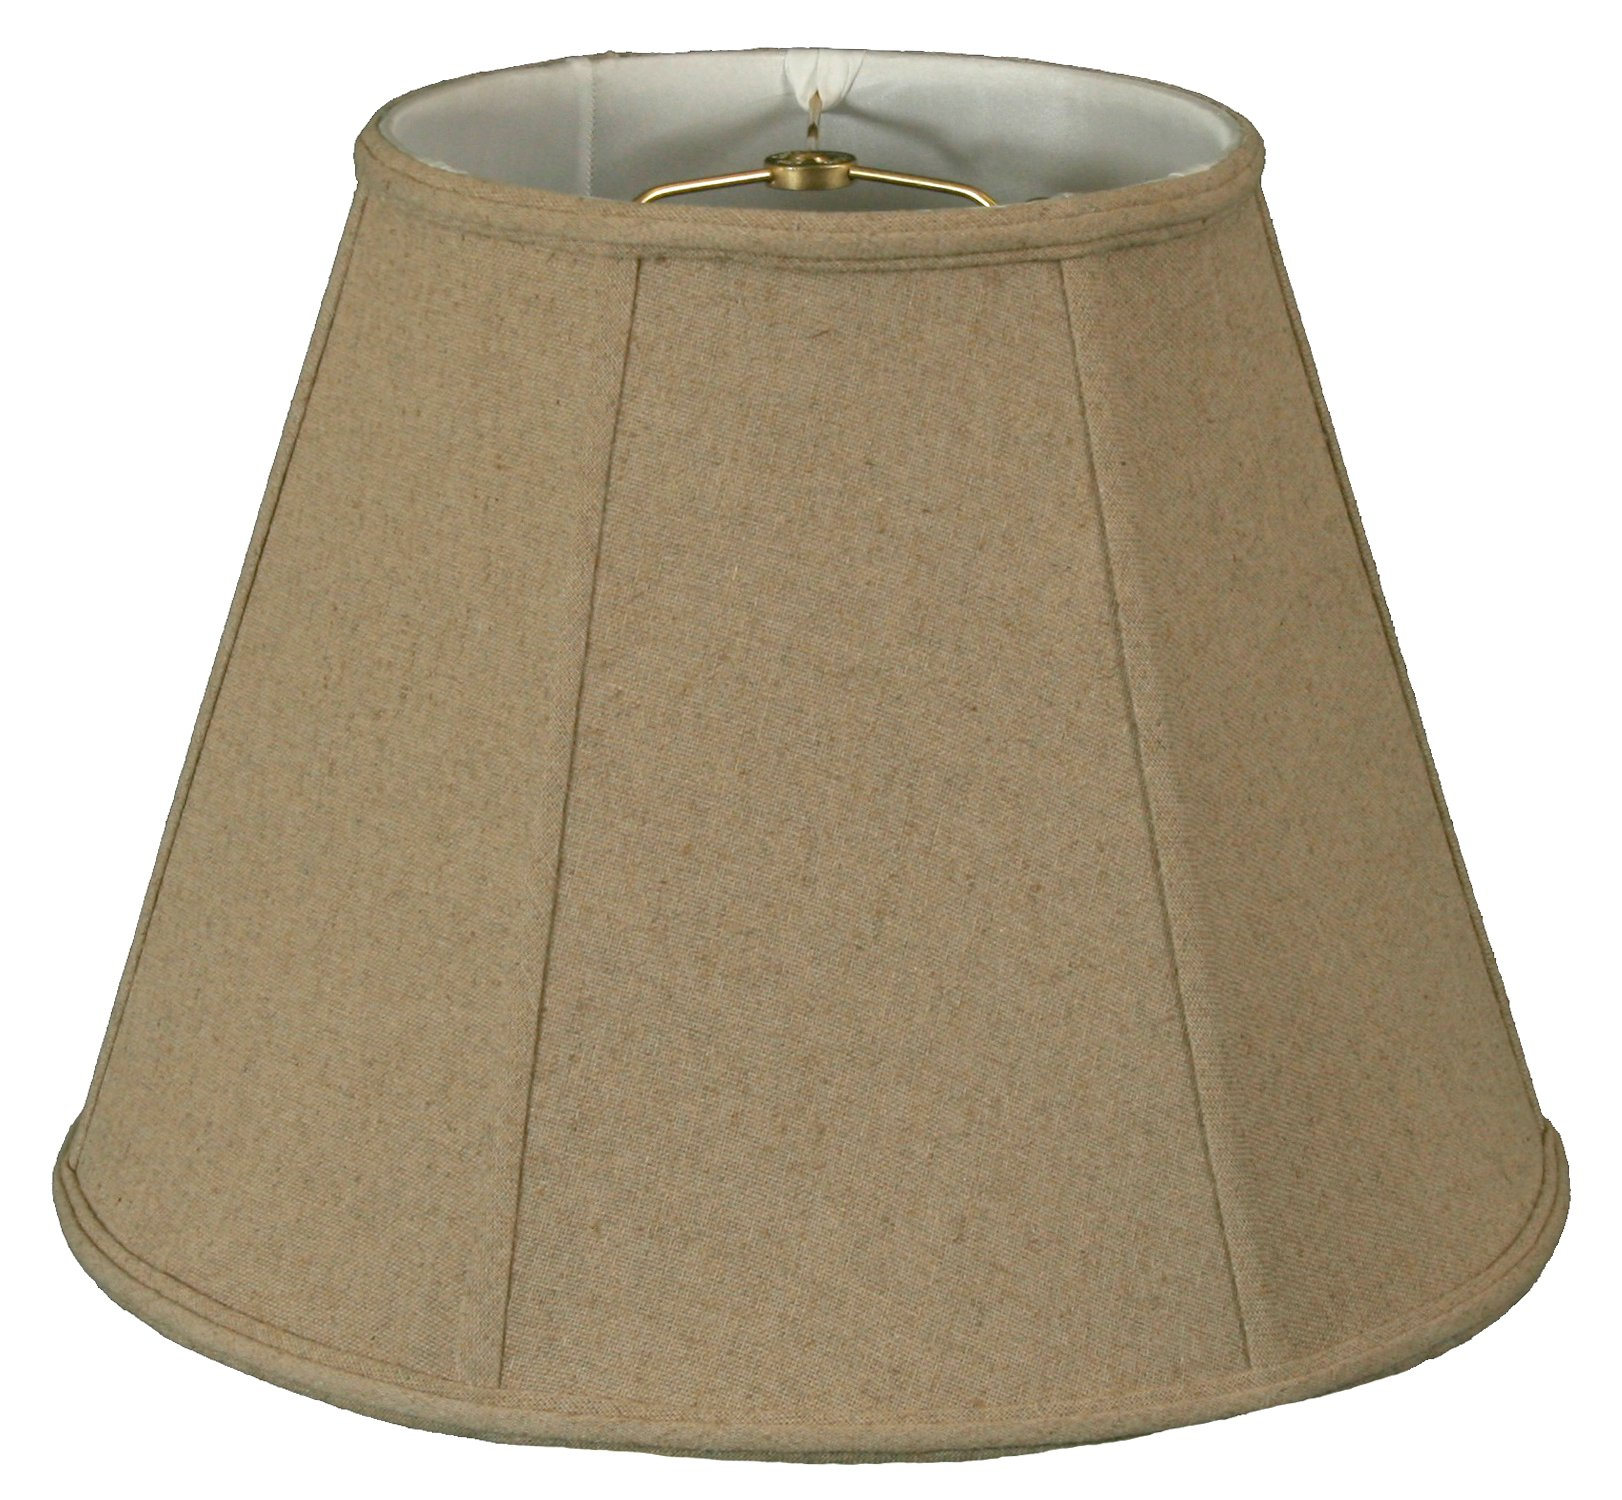 Royal Designs Deep Empire Lamp Shade, Linen Cream, 11 x 22 x 16